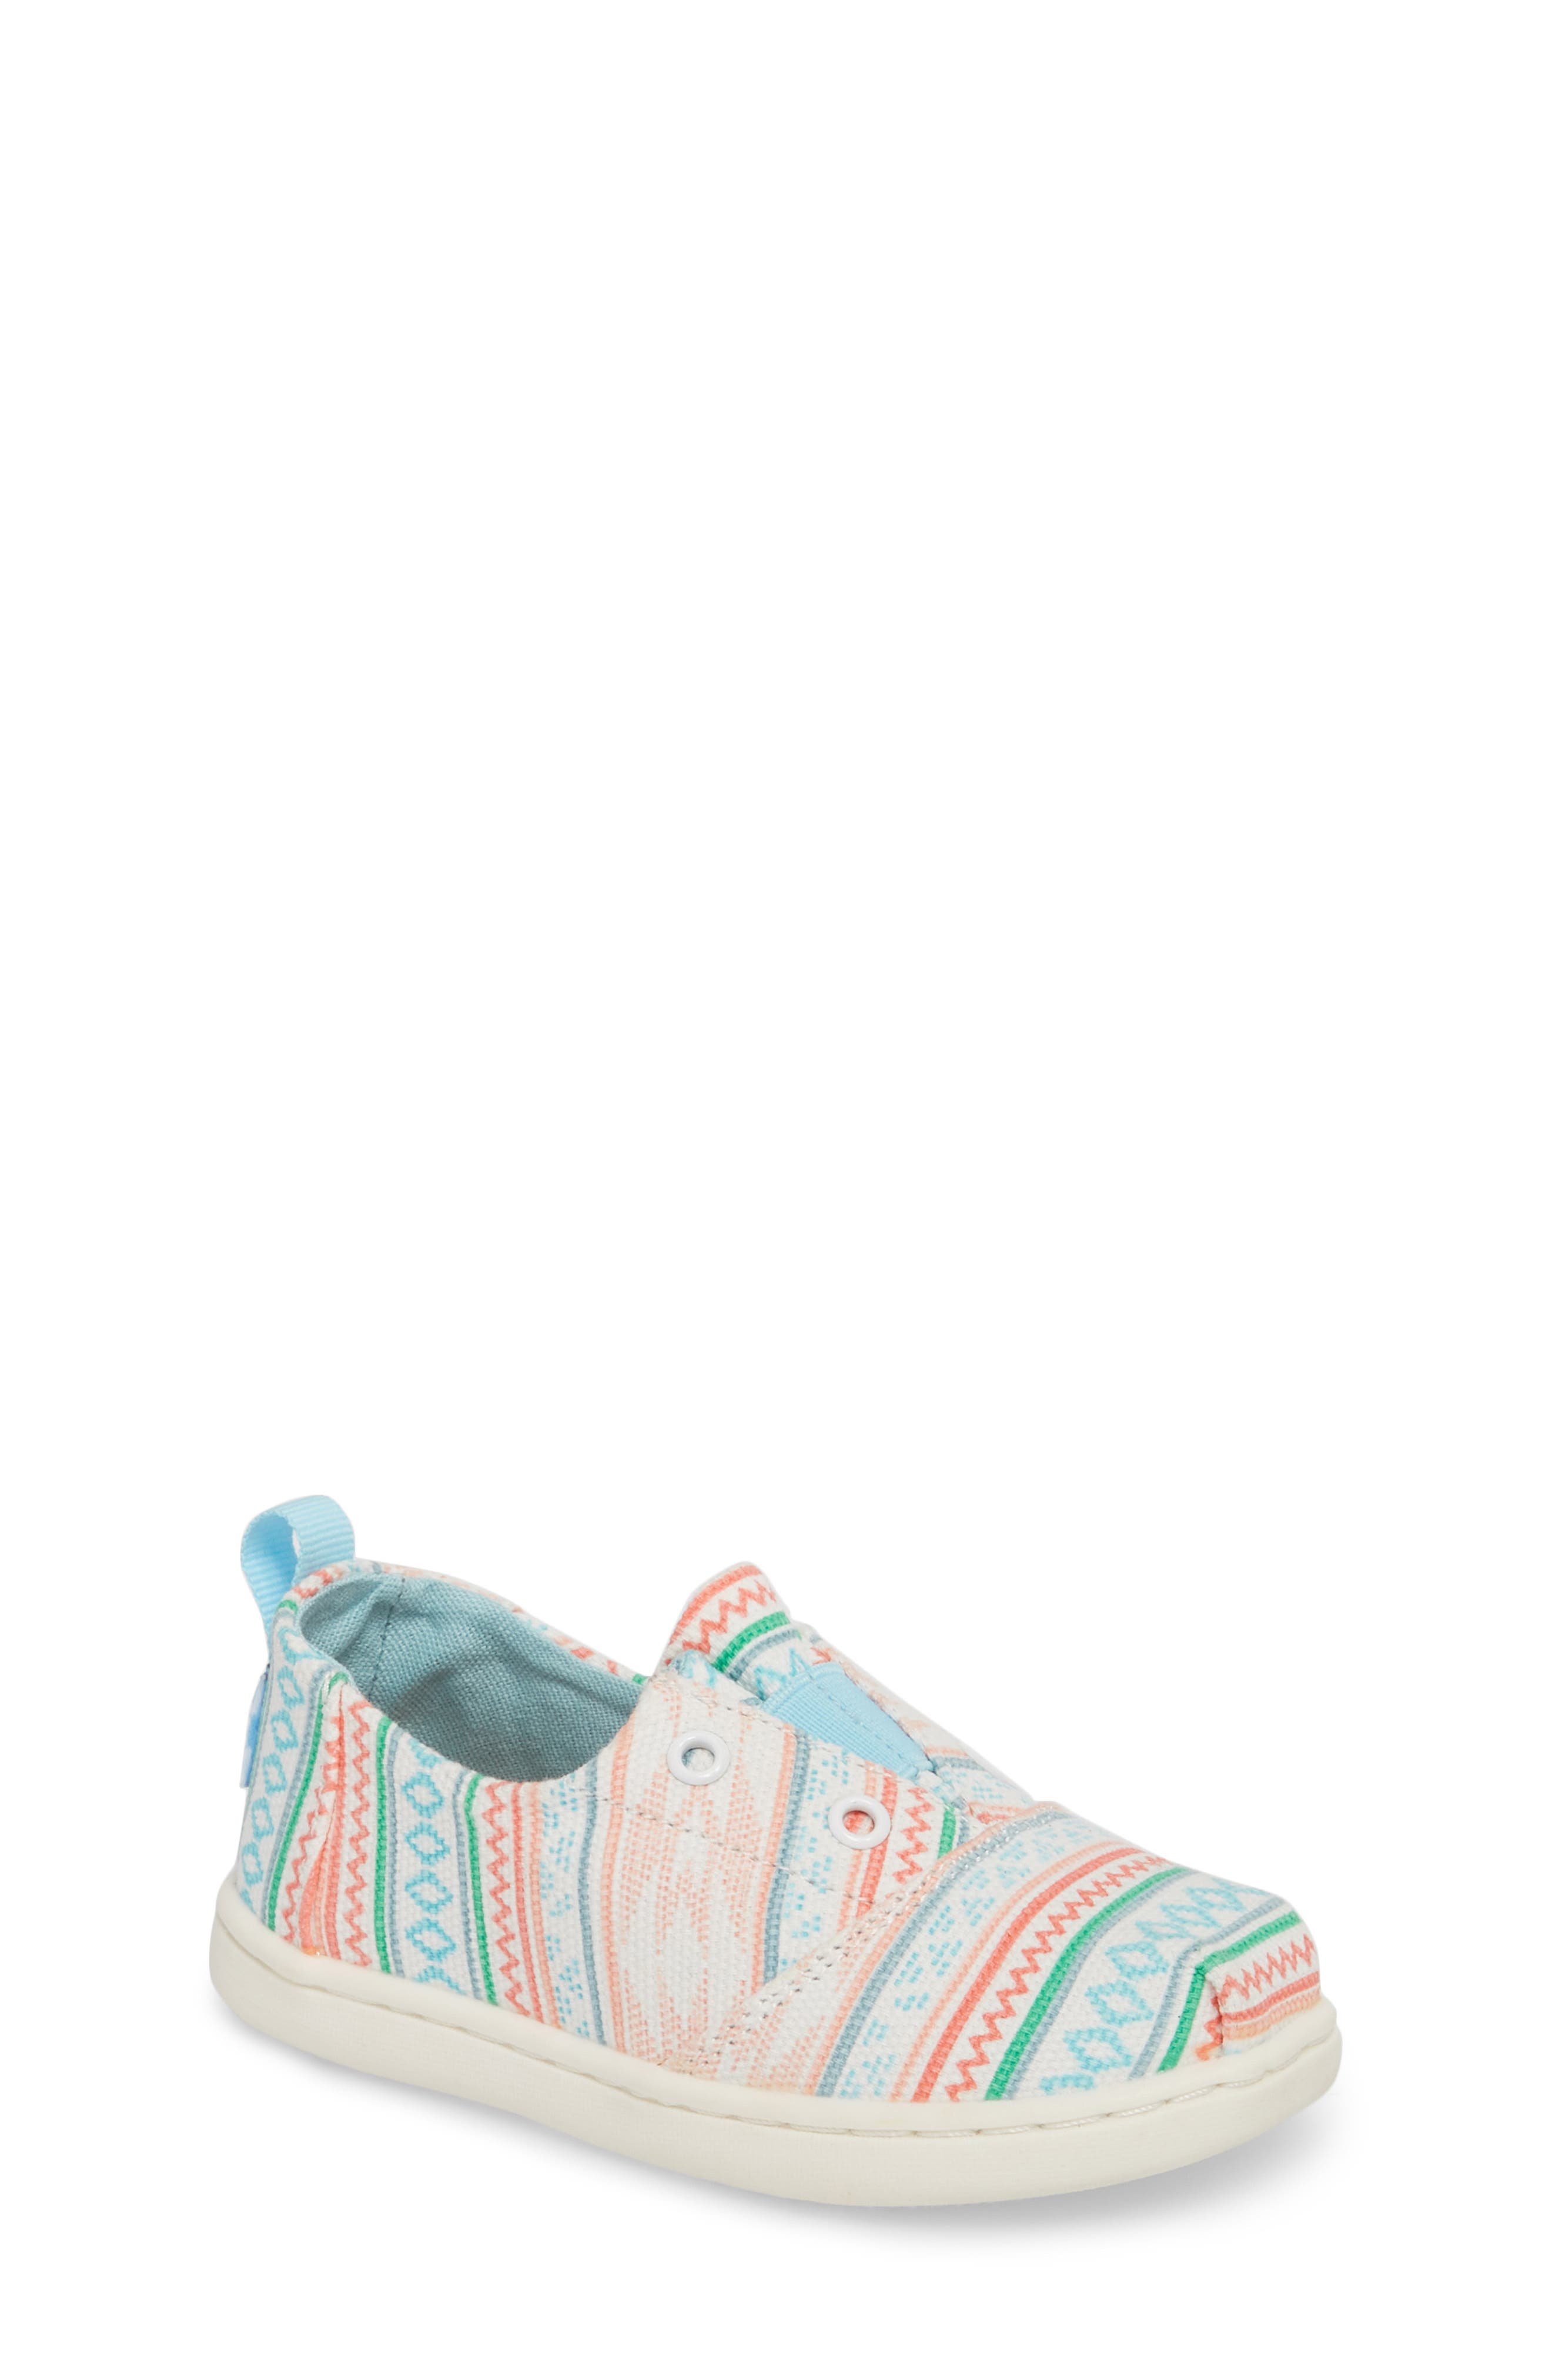 Lumin Slip-On,                             Main thumbnail 1, color,                             400